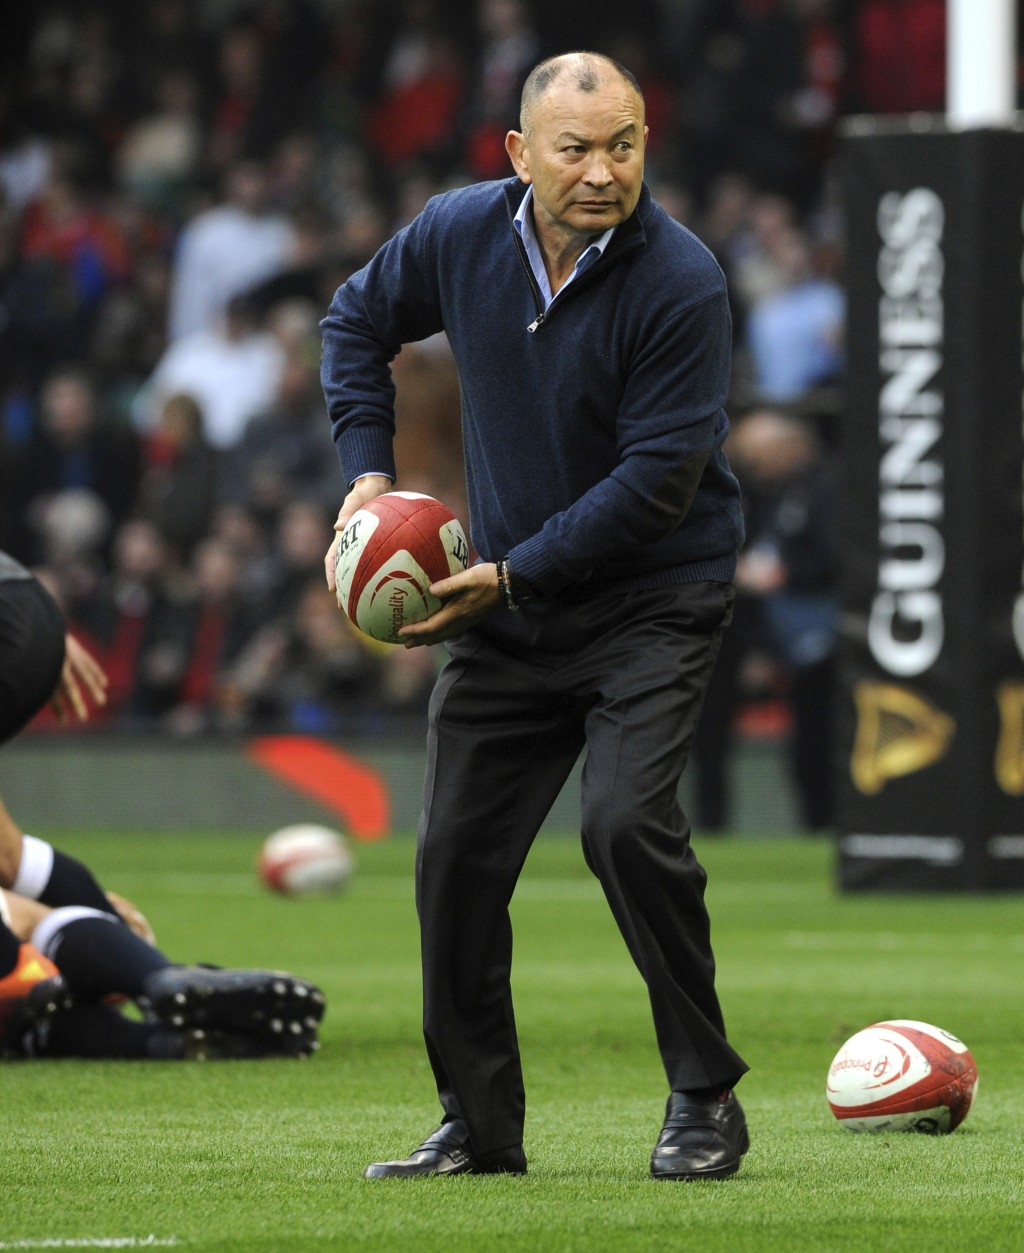 FILE - In this Feb. 23, 2019, file photo, England rugby head coach Eddie Jones prepares to pass the ball as his team prepares for the Six Nations rugb...